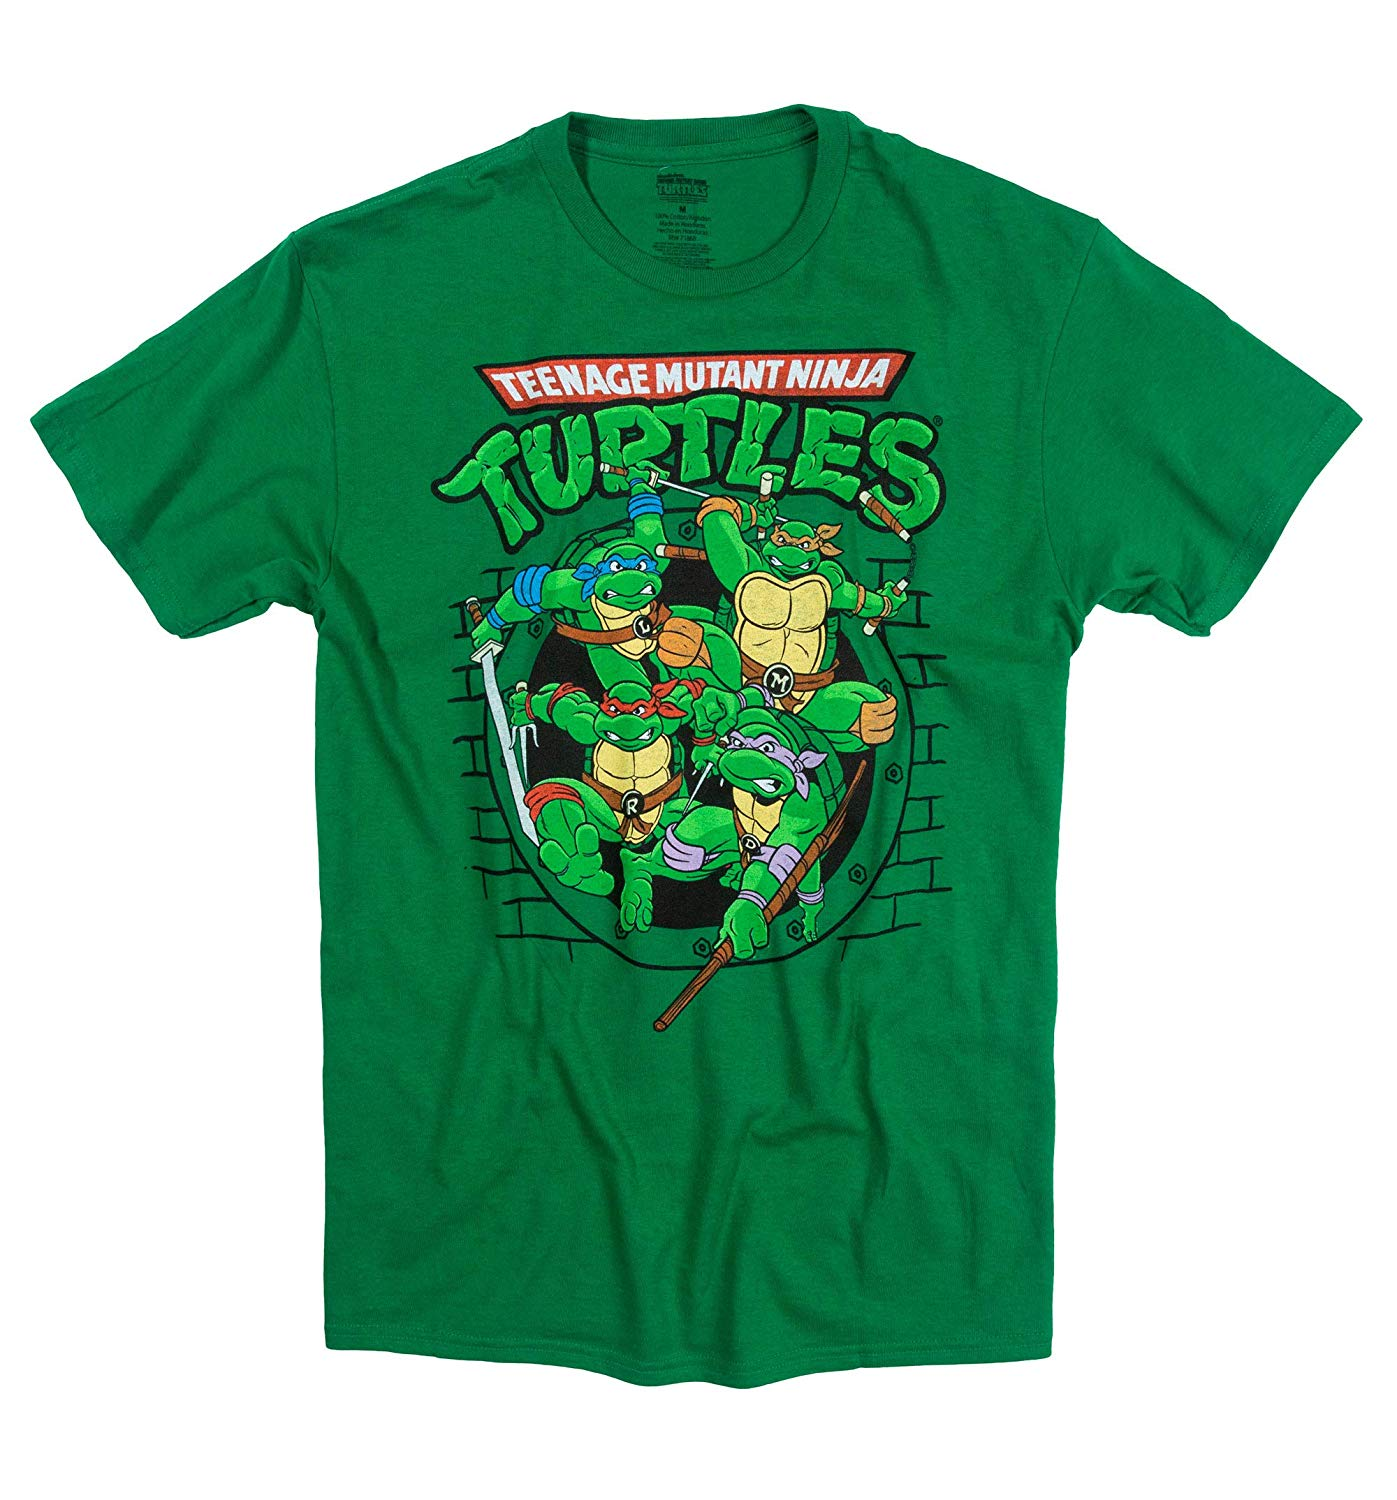 Teenage Mutant Ninja Turtles Ready for Action Green T-Shirt X-Large